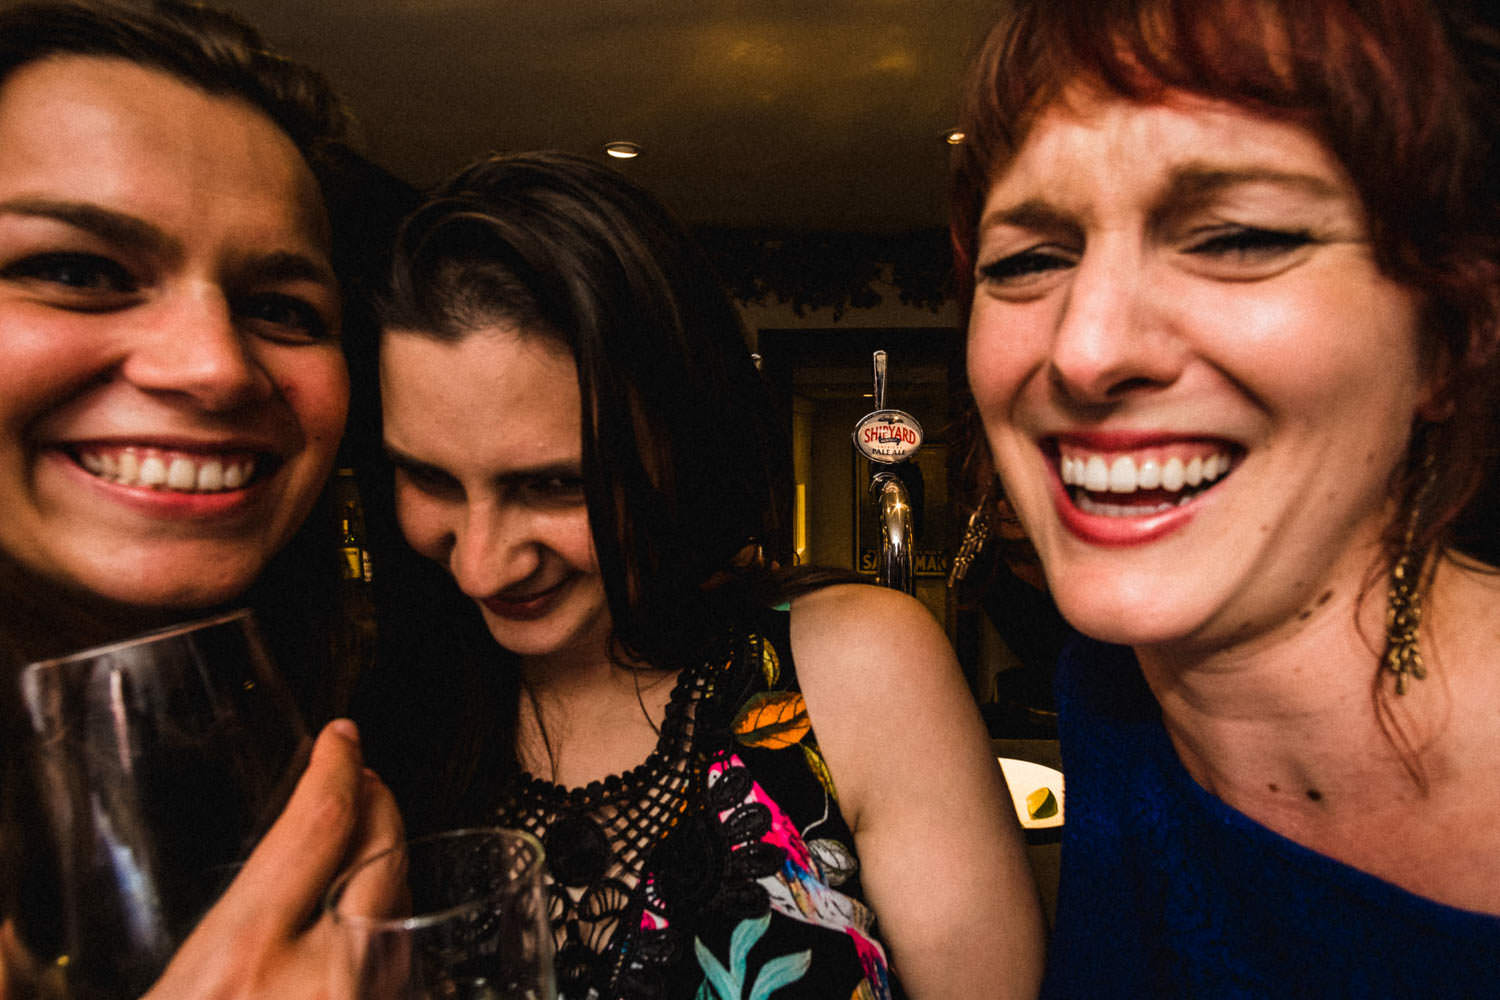 Documentary party photography at The Punch Bowl Inn, Lake District